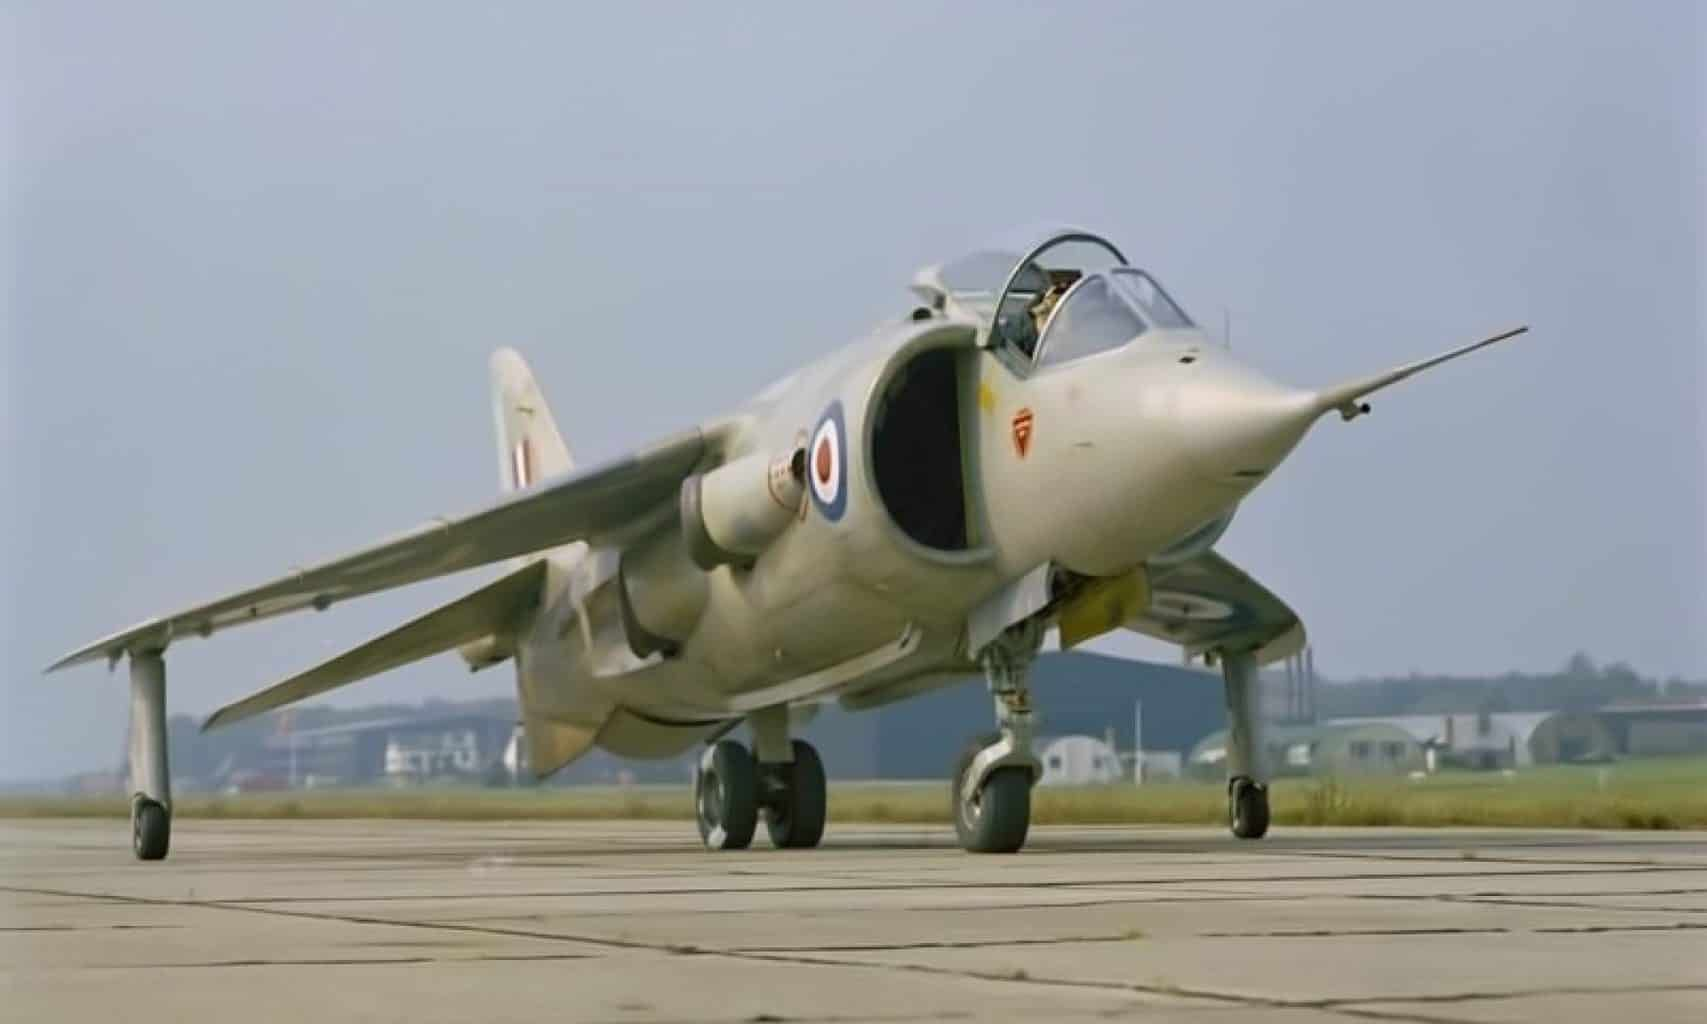 The P.1154: The Supersonic Harrier That Never Was